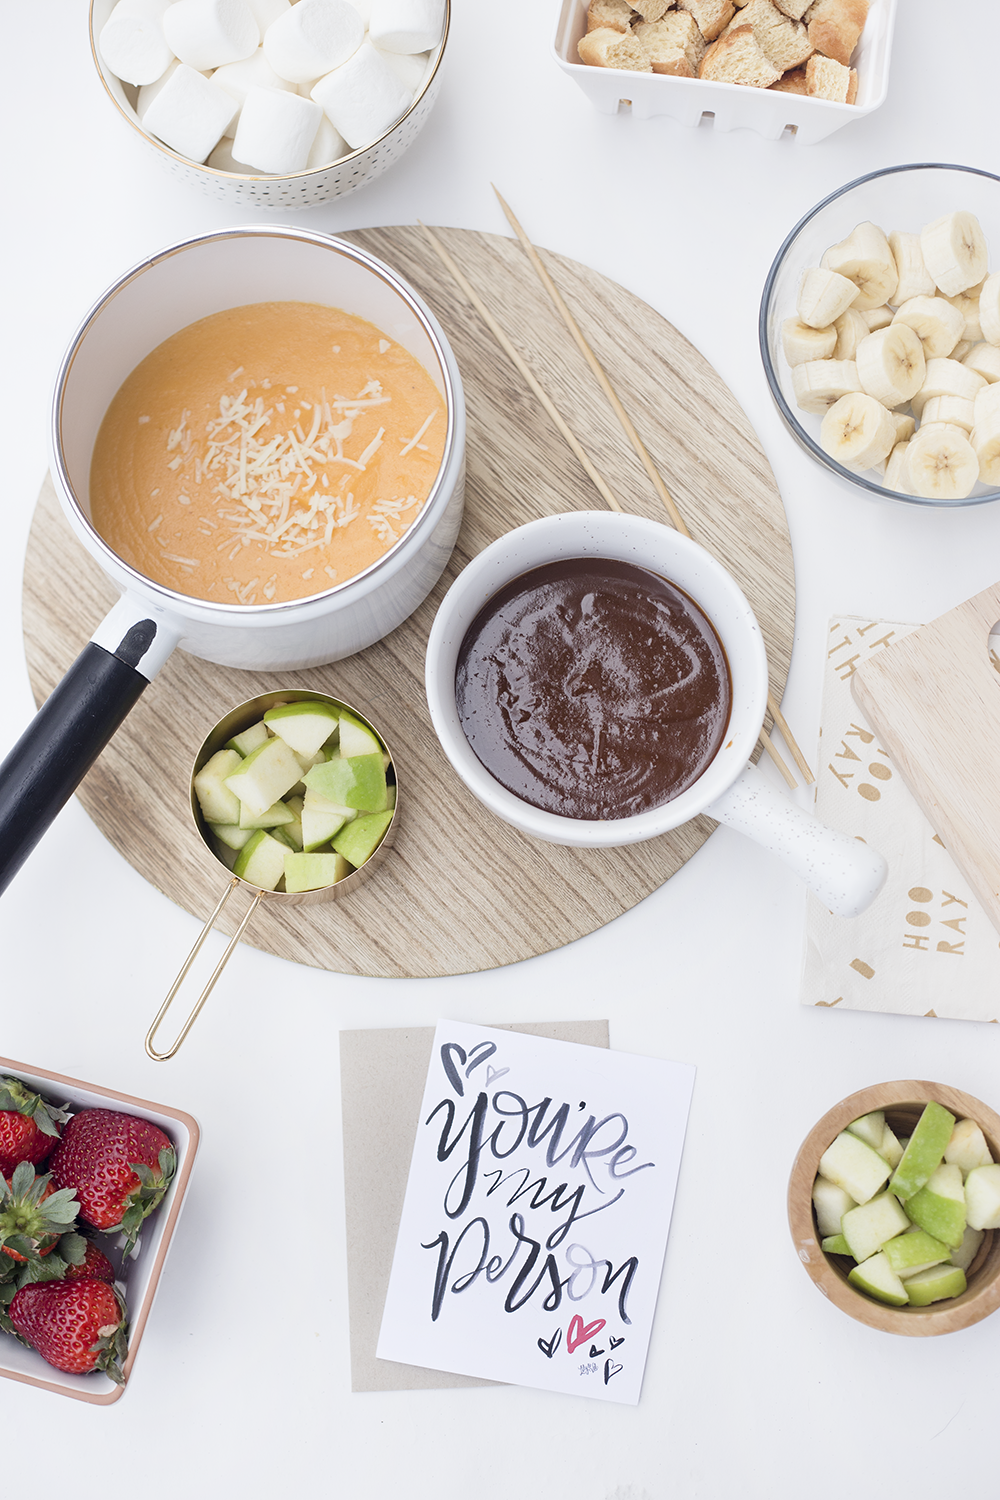 fondue for two | fondue recipes | date night ideas